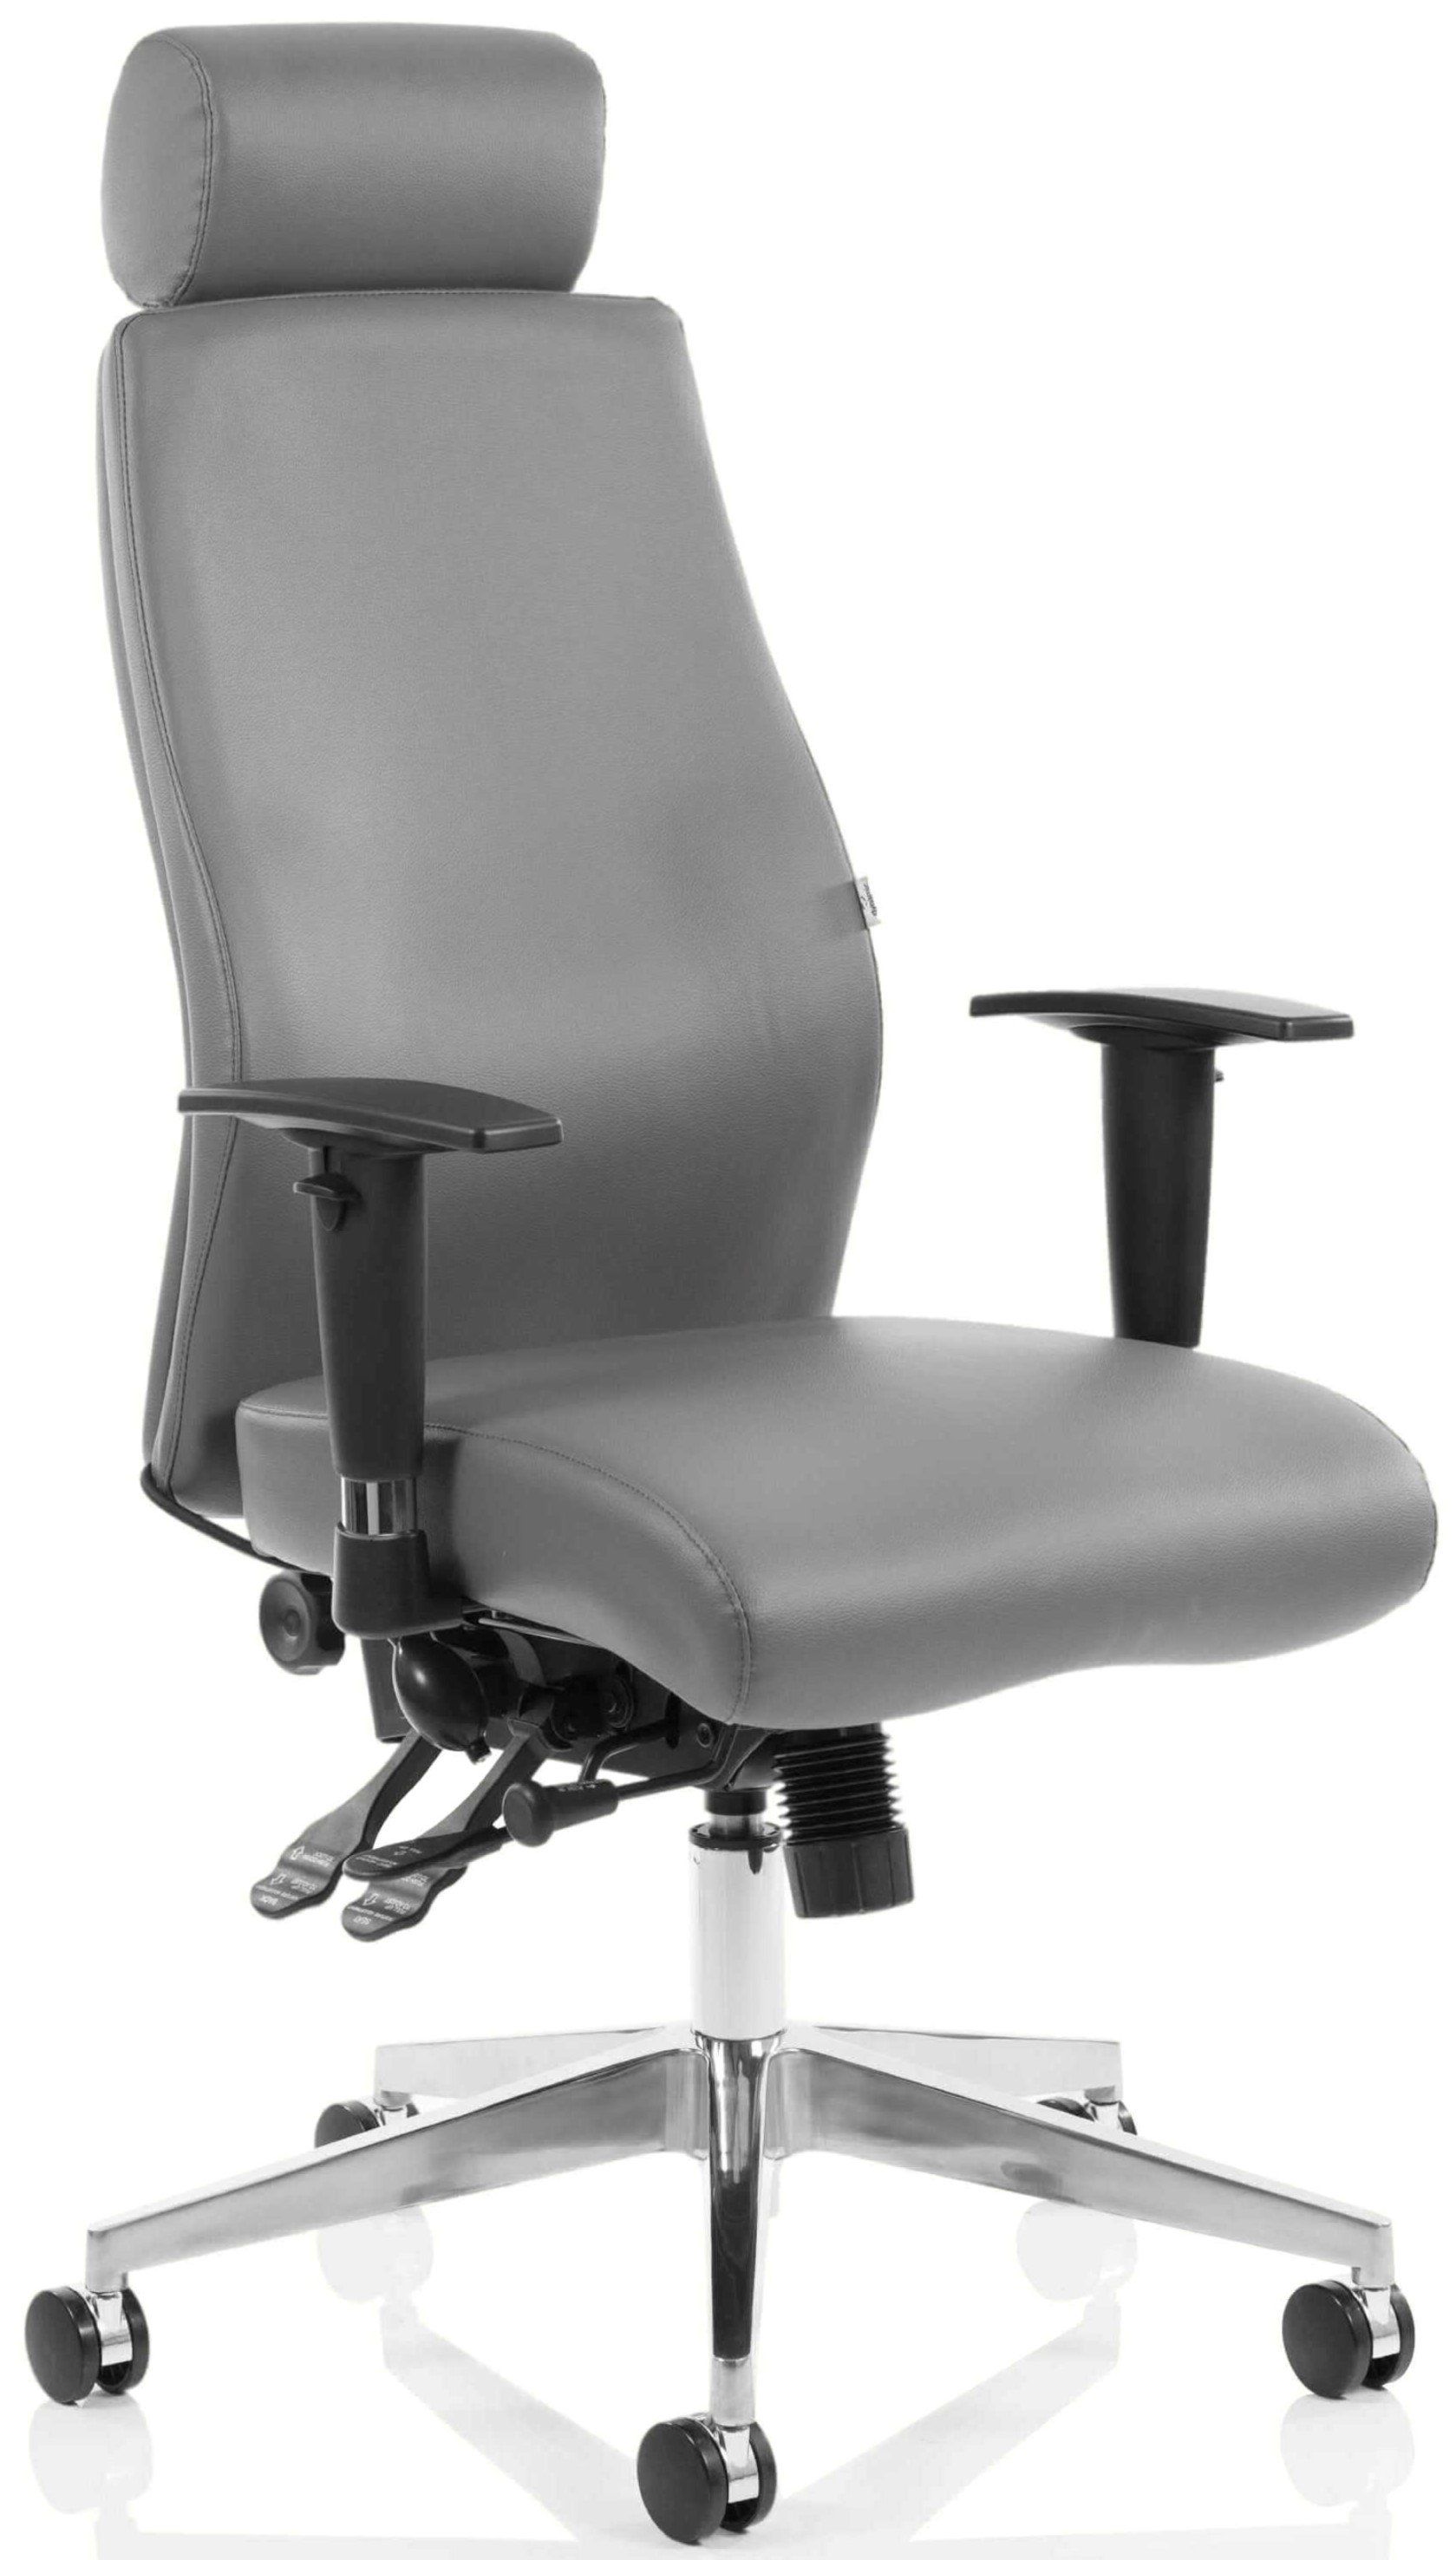 posture leather chair covers for sale ireland onyx chiropractor office